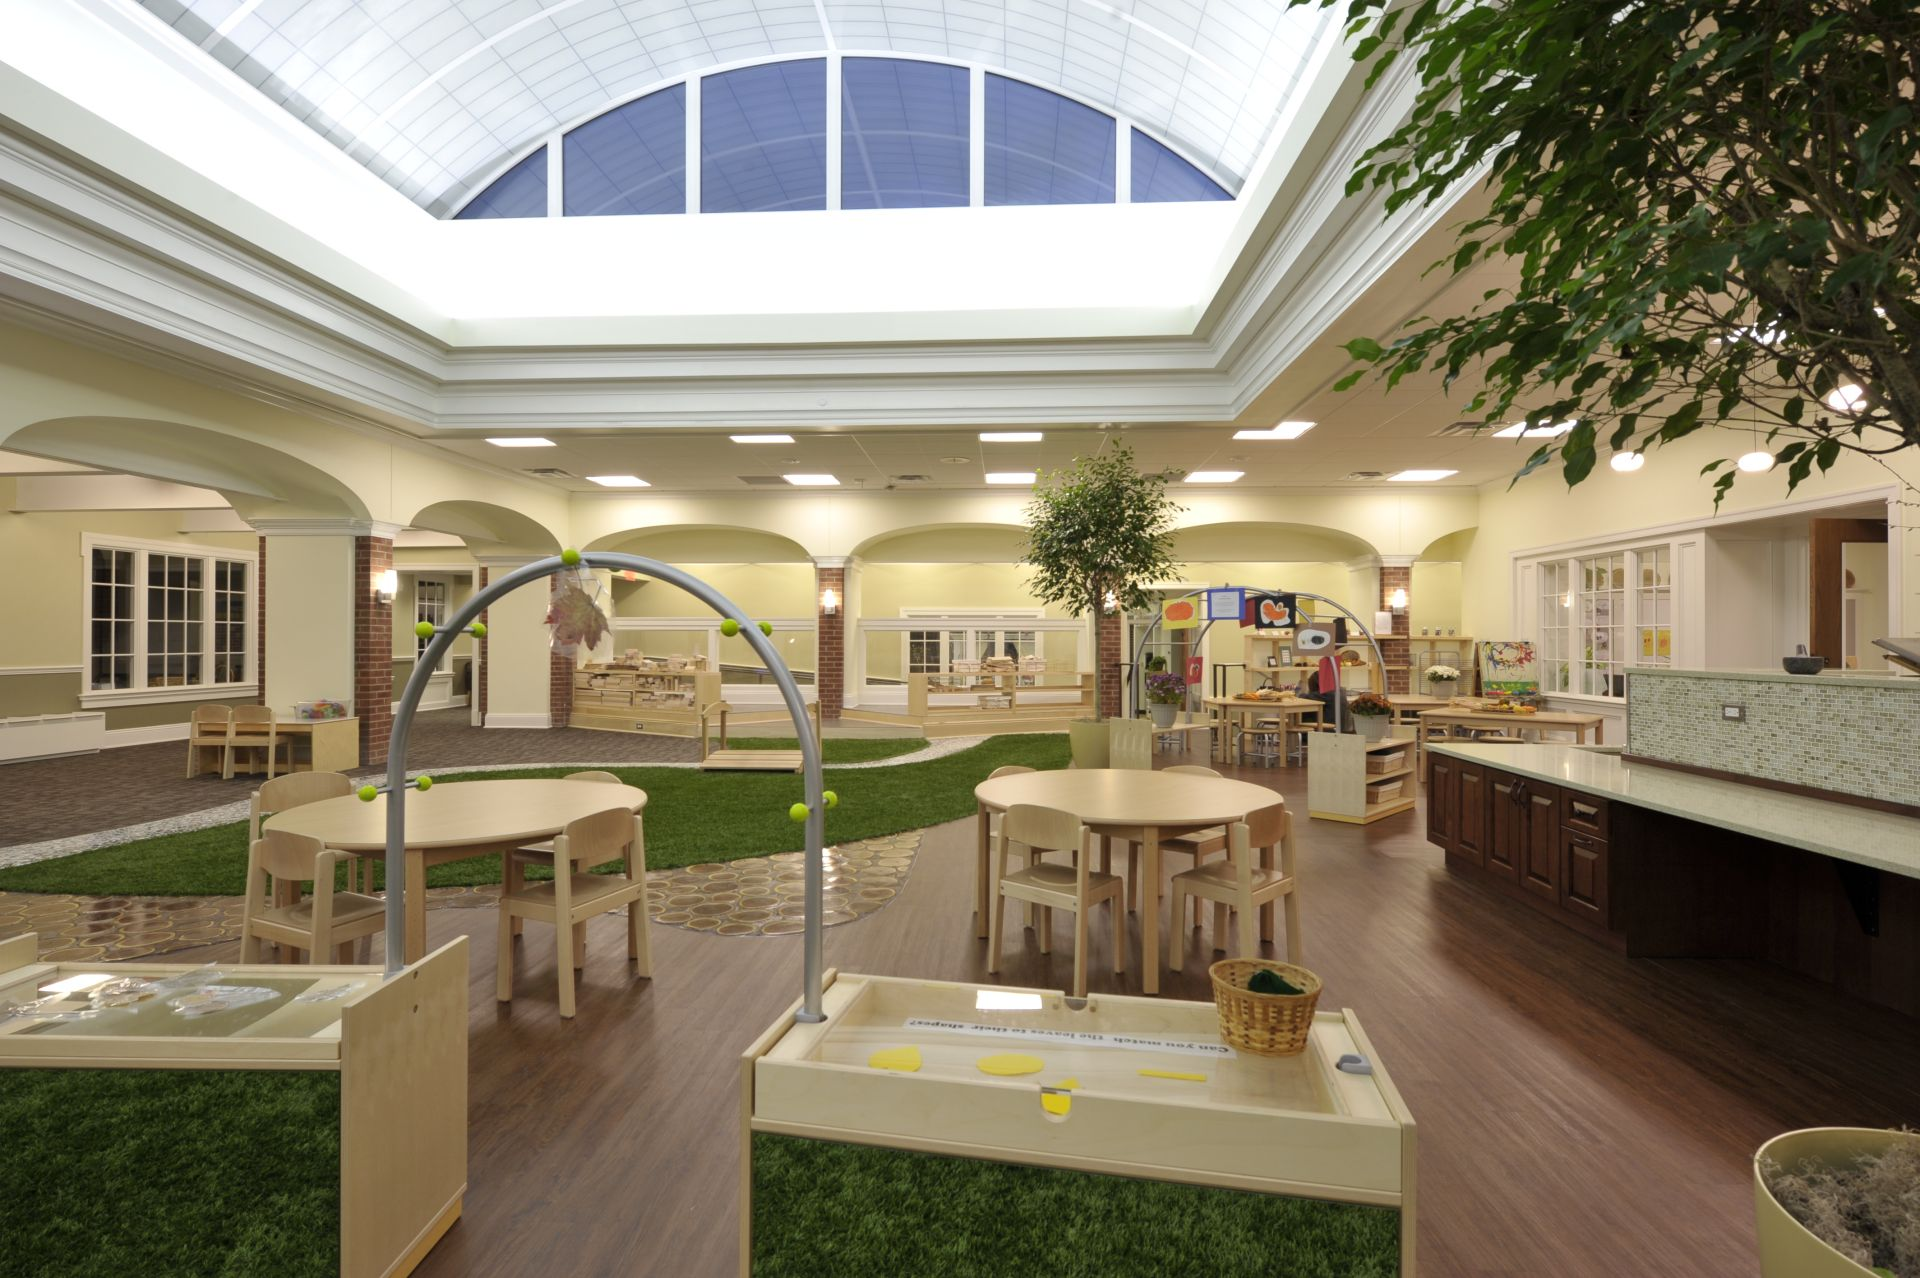 The Nido is the central community space in the Early Childhood Center.